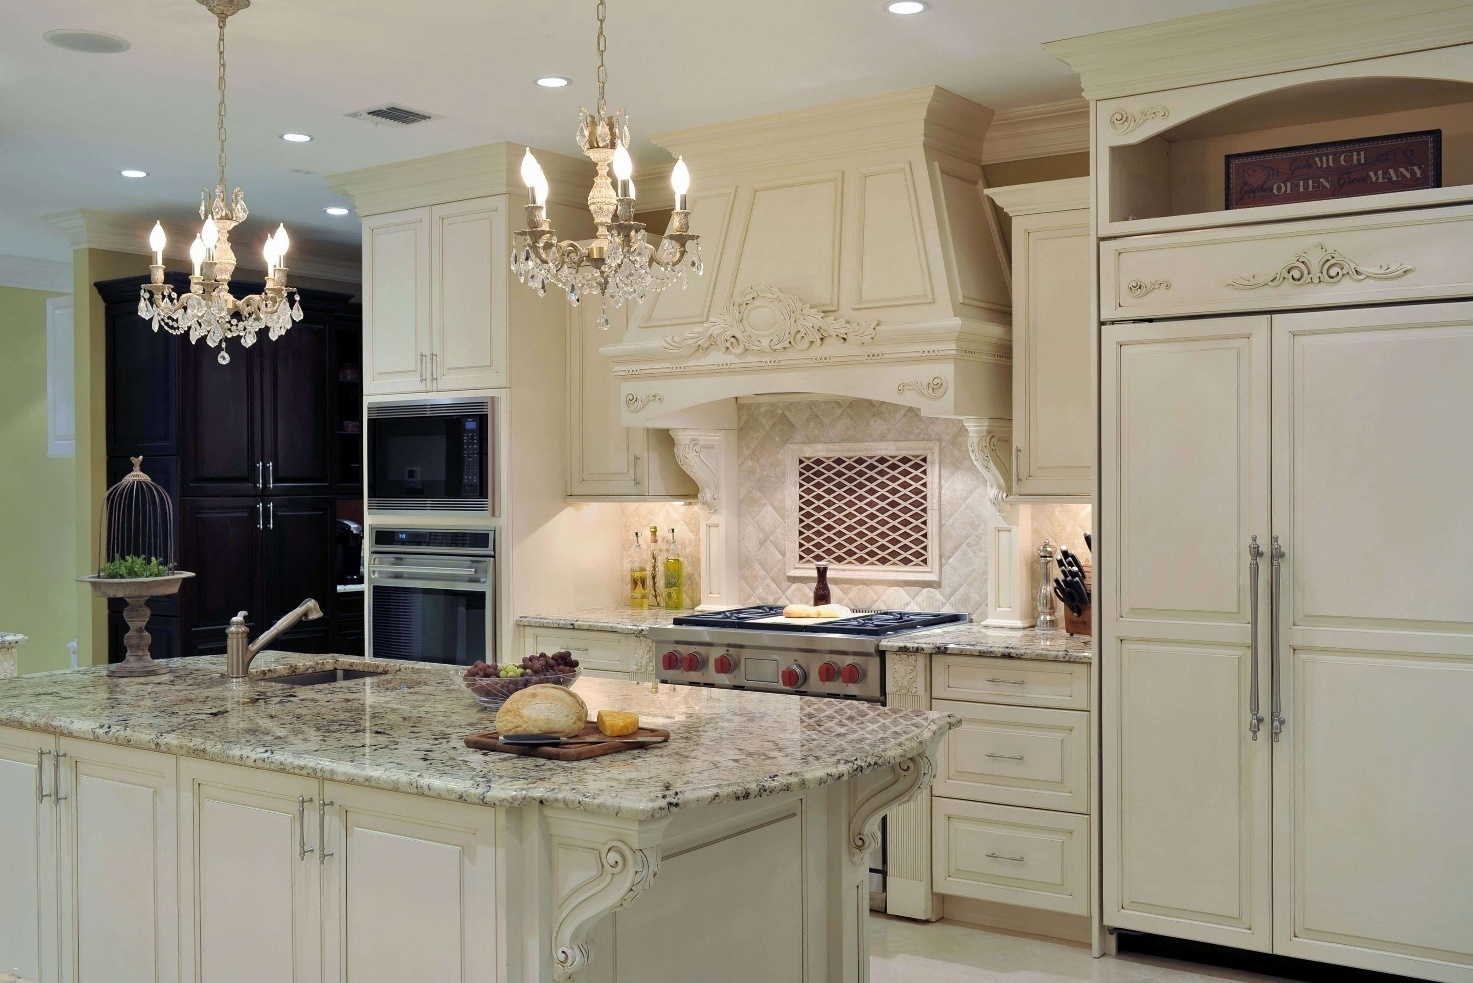 Kitchen Decor Set Themes